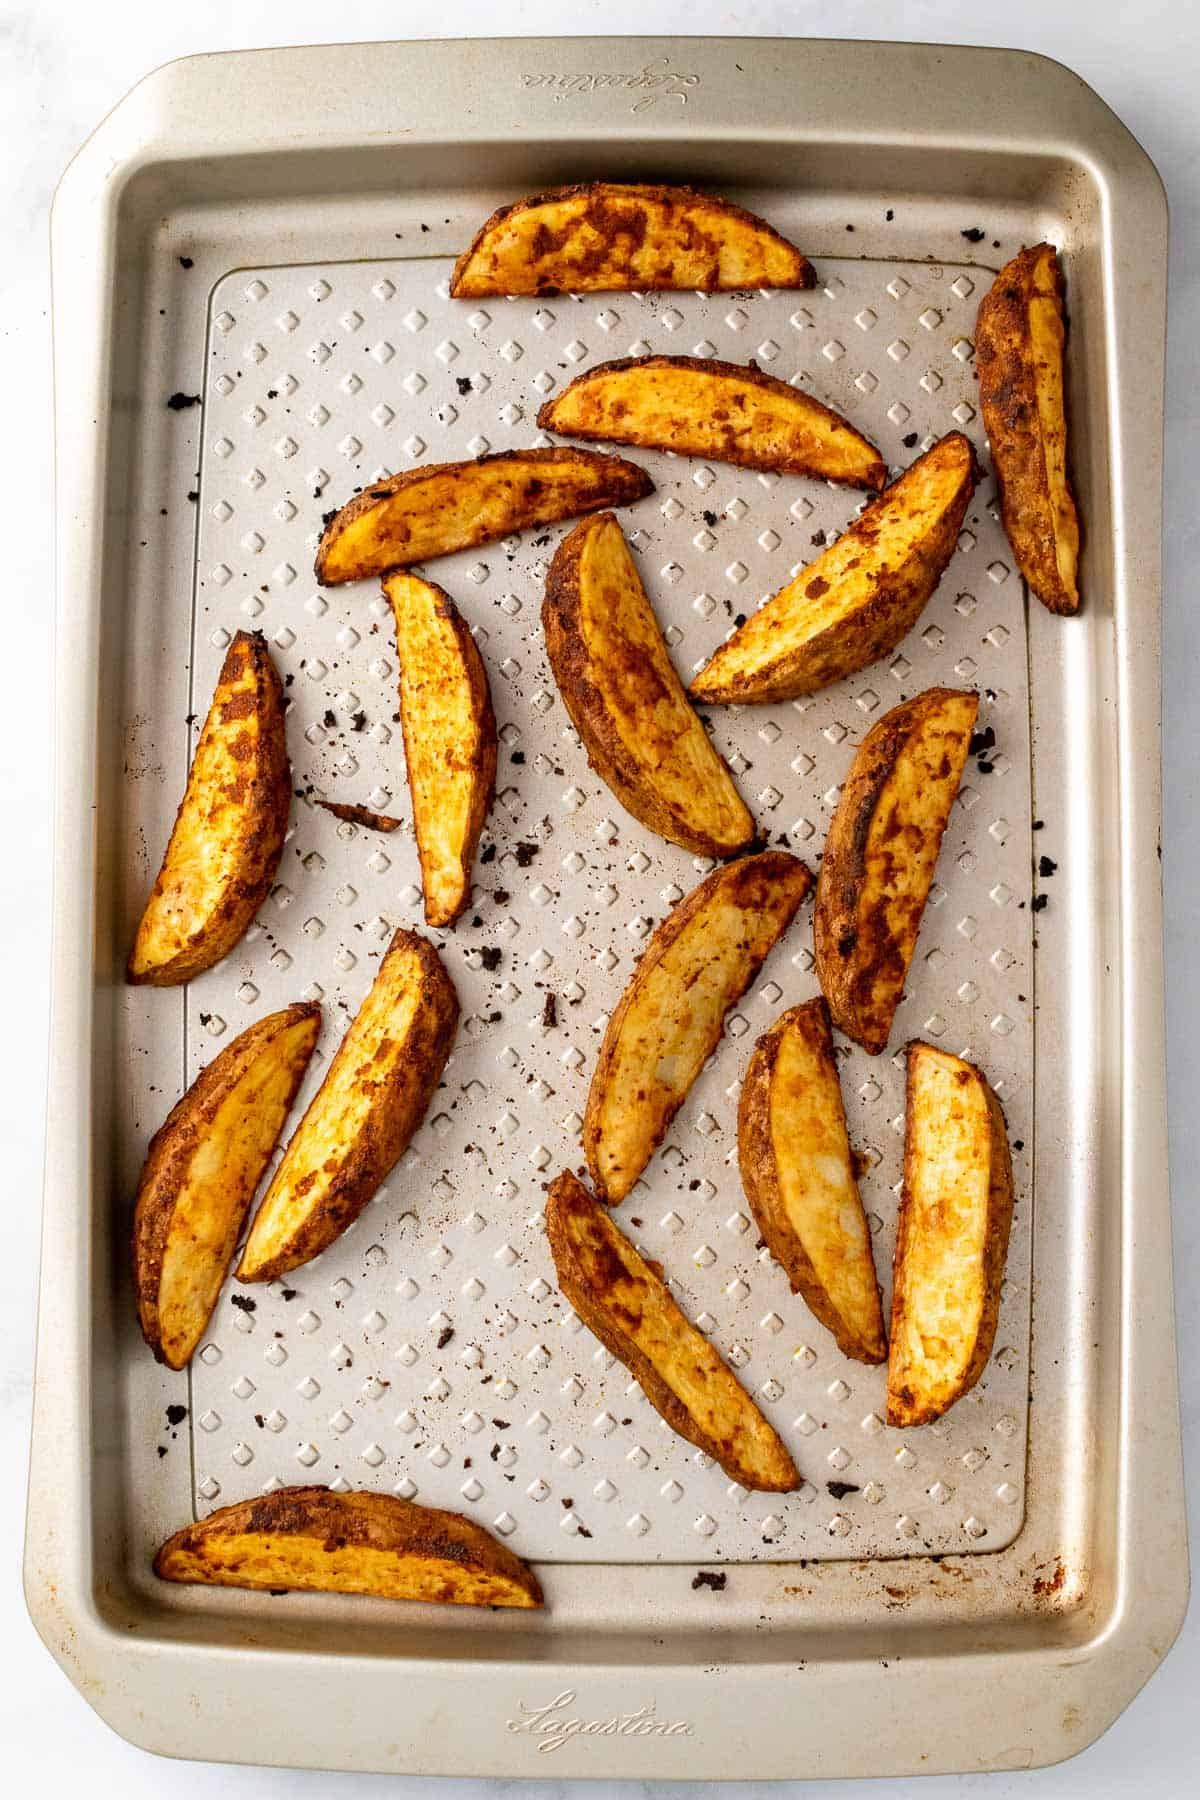 Baked French fries on a aluminum baking sheet